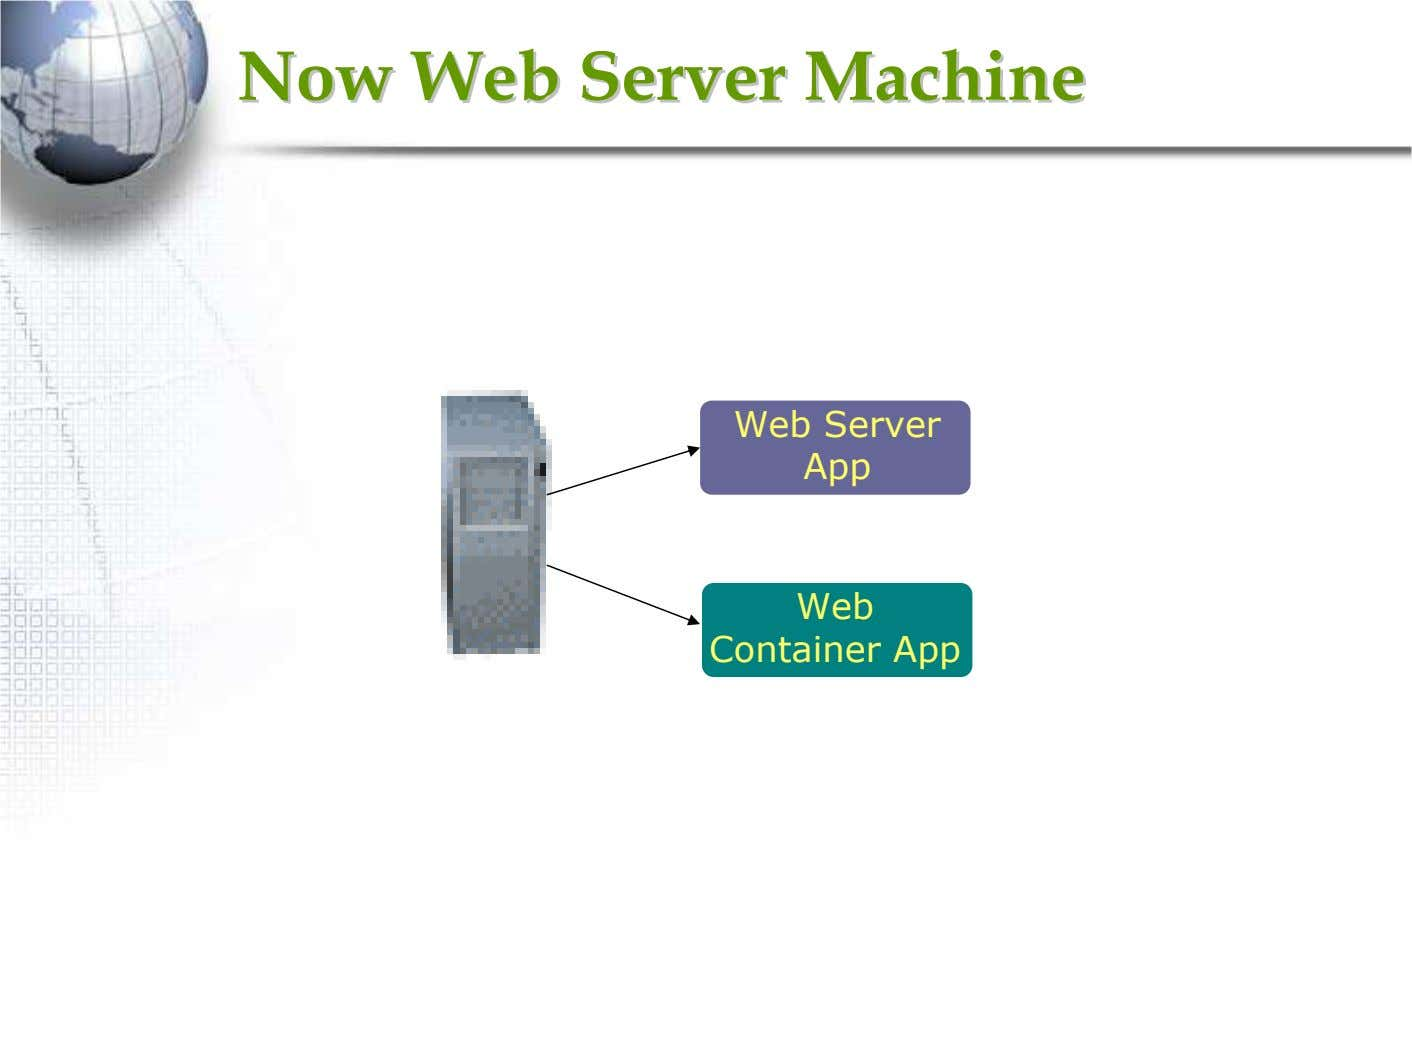 NowNow WebWeb ServerServer MachineMachine Web Server App Web Container App